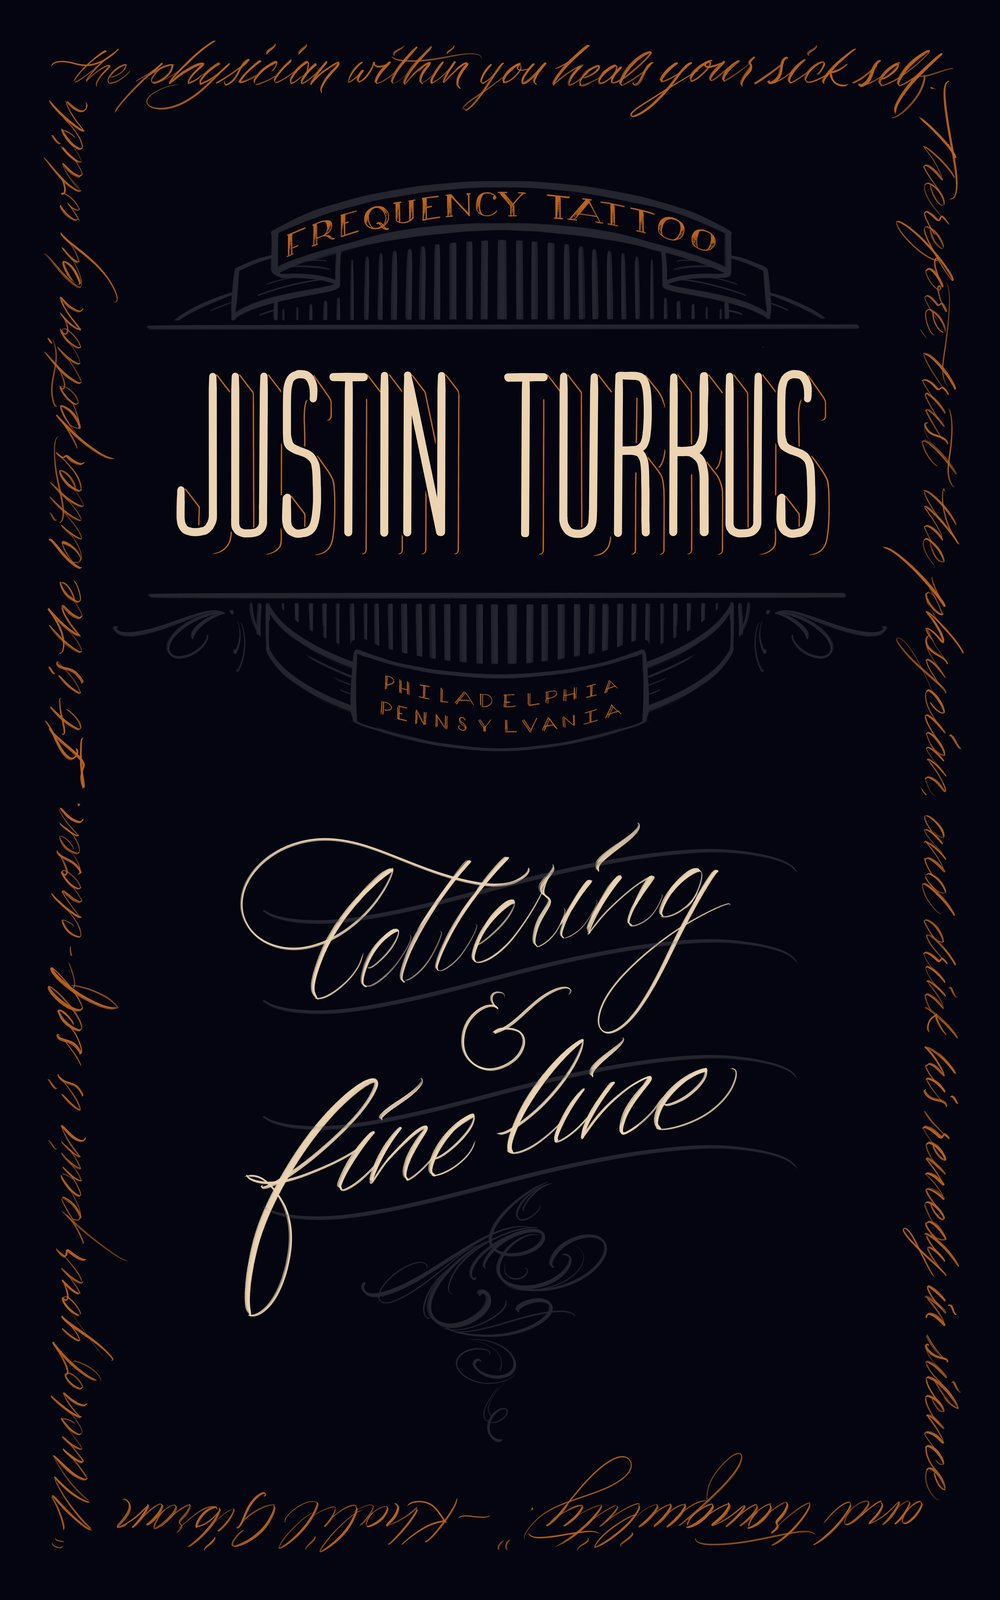 graphic design Justin Turkus Philadelphia tattoo artist banner convention lettering fine line frequency.jpg